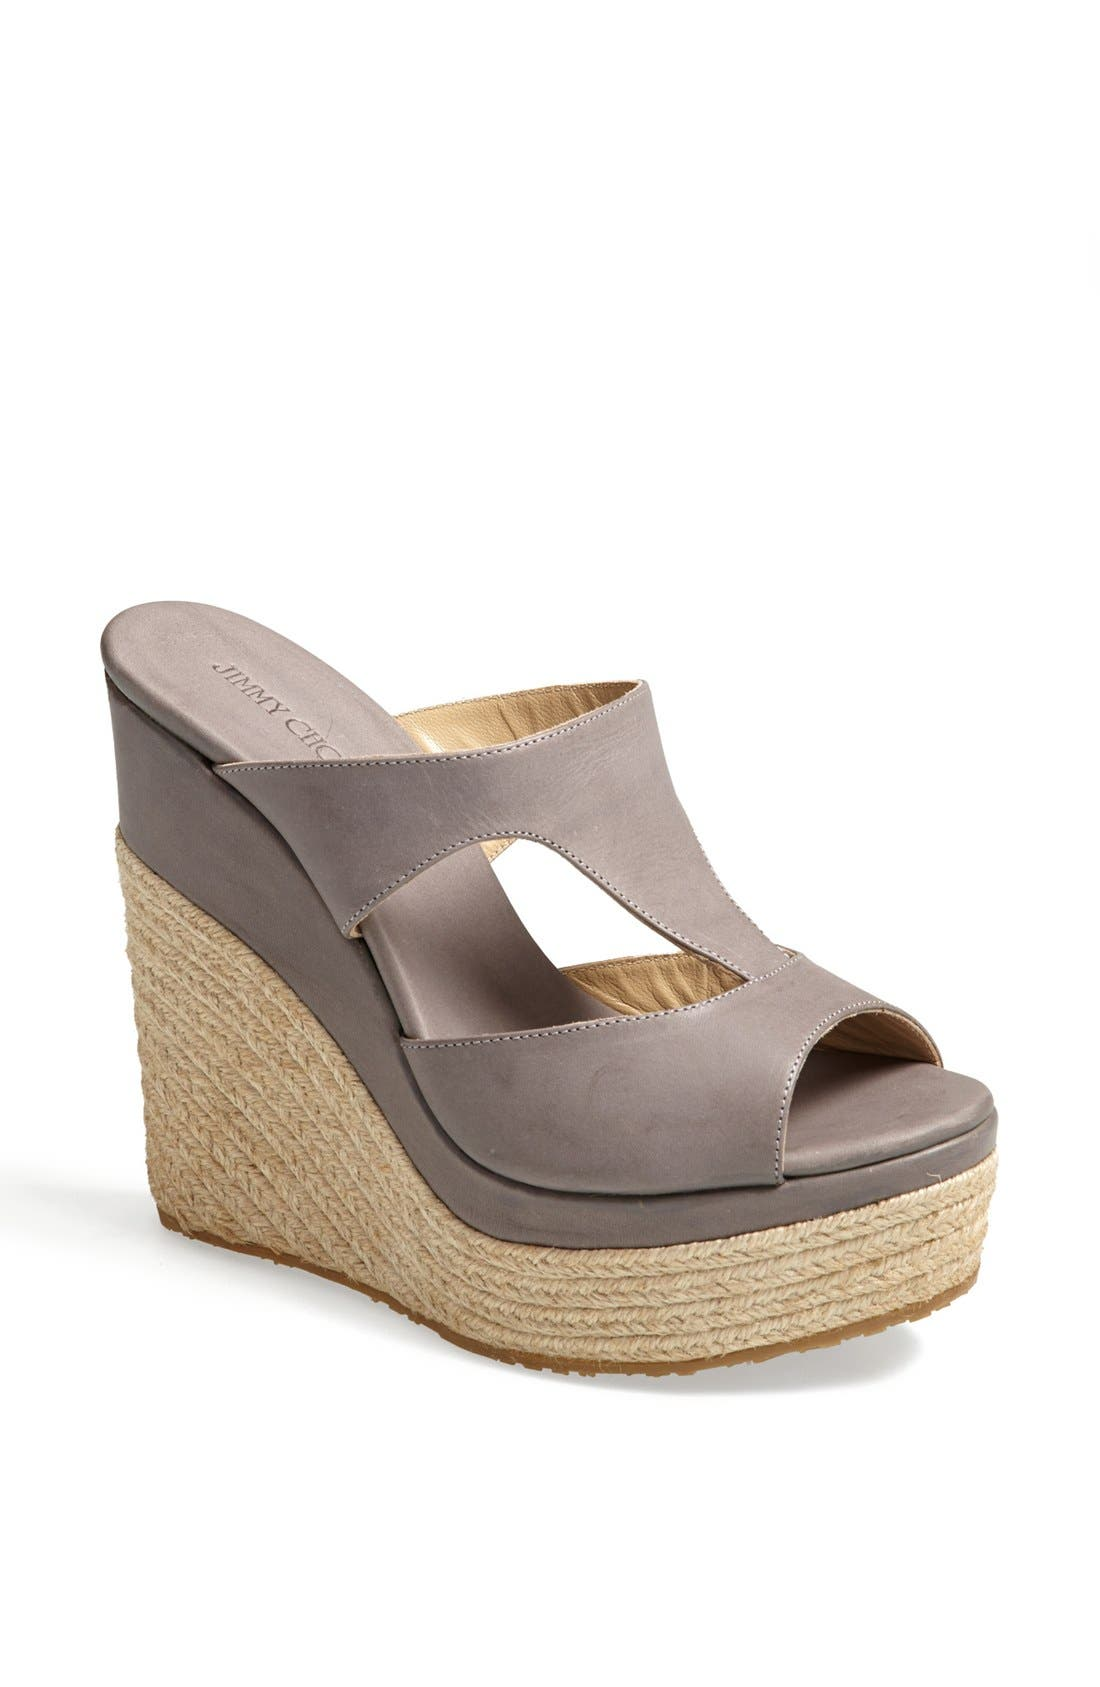 Alternate Image 1 Selected - Jimmy Choo 'Pledge' Espadrille Sandal